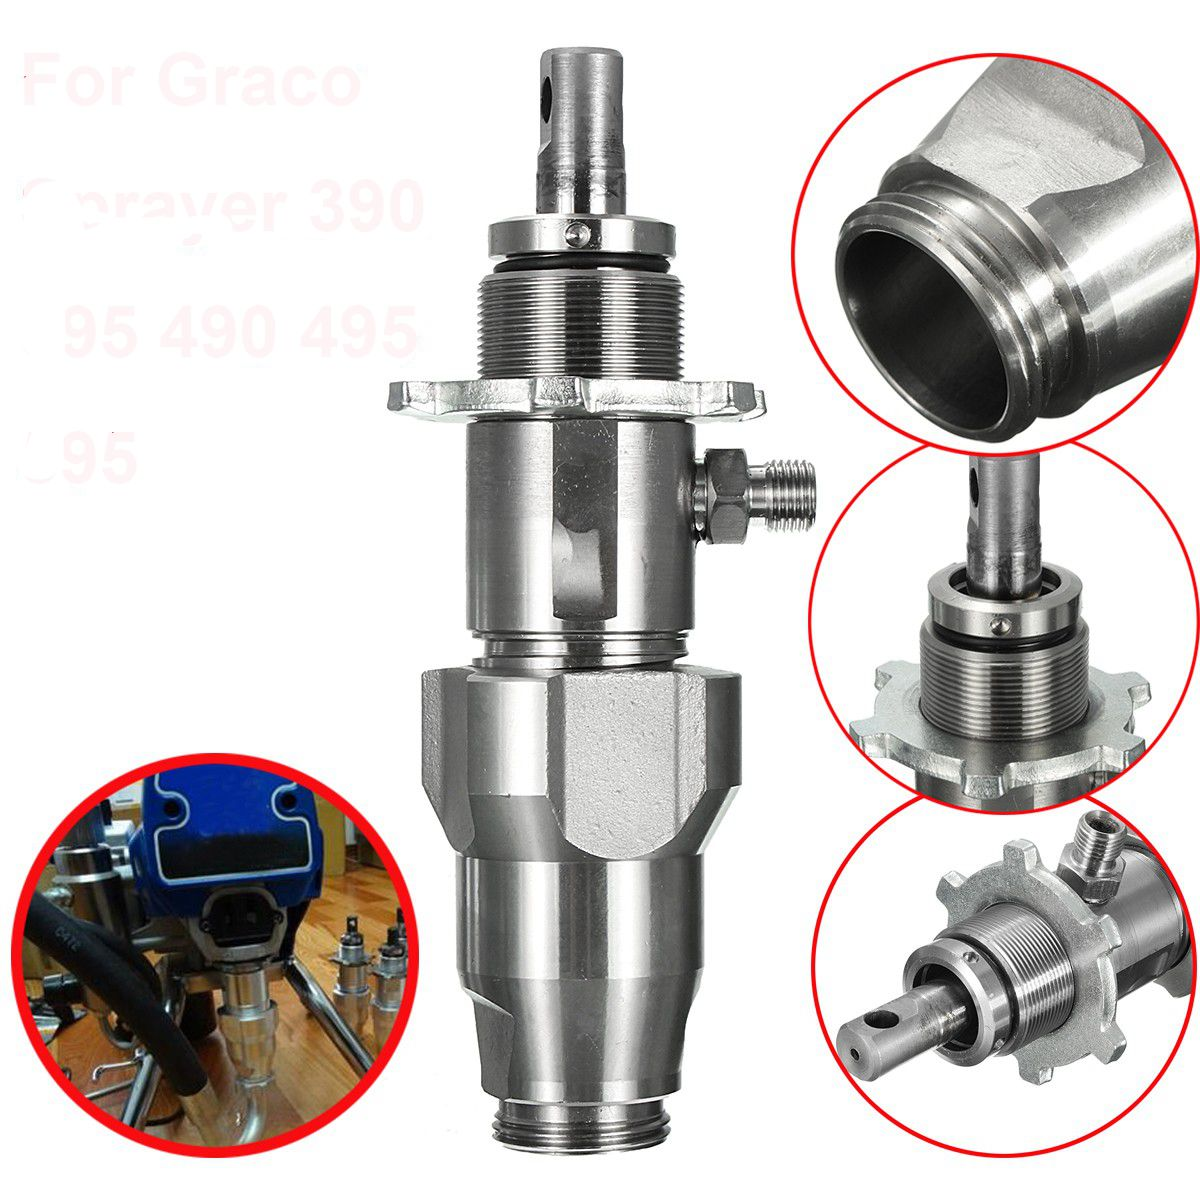 1PC Wear-resisting Stainless Steel Paint Pump Replacement Of Airless Spraying Machine For Sprayer 390 395 490 495 595 Sprayer